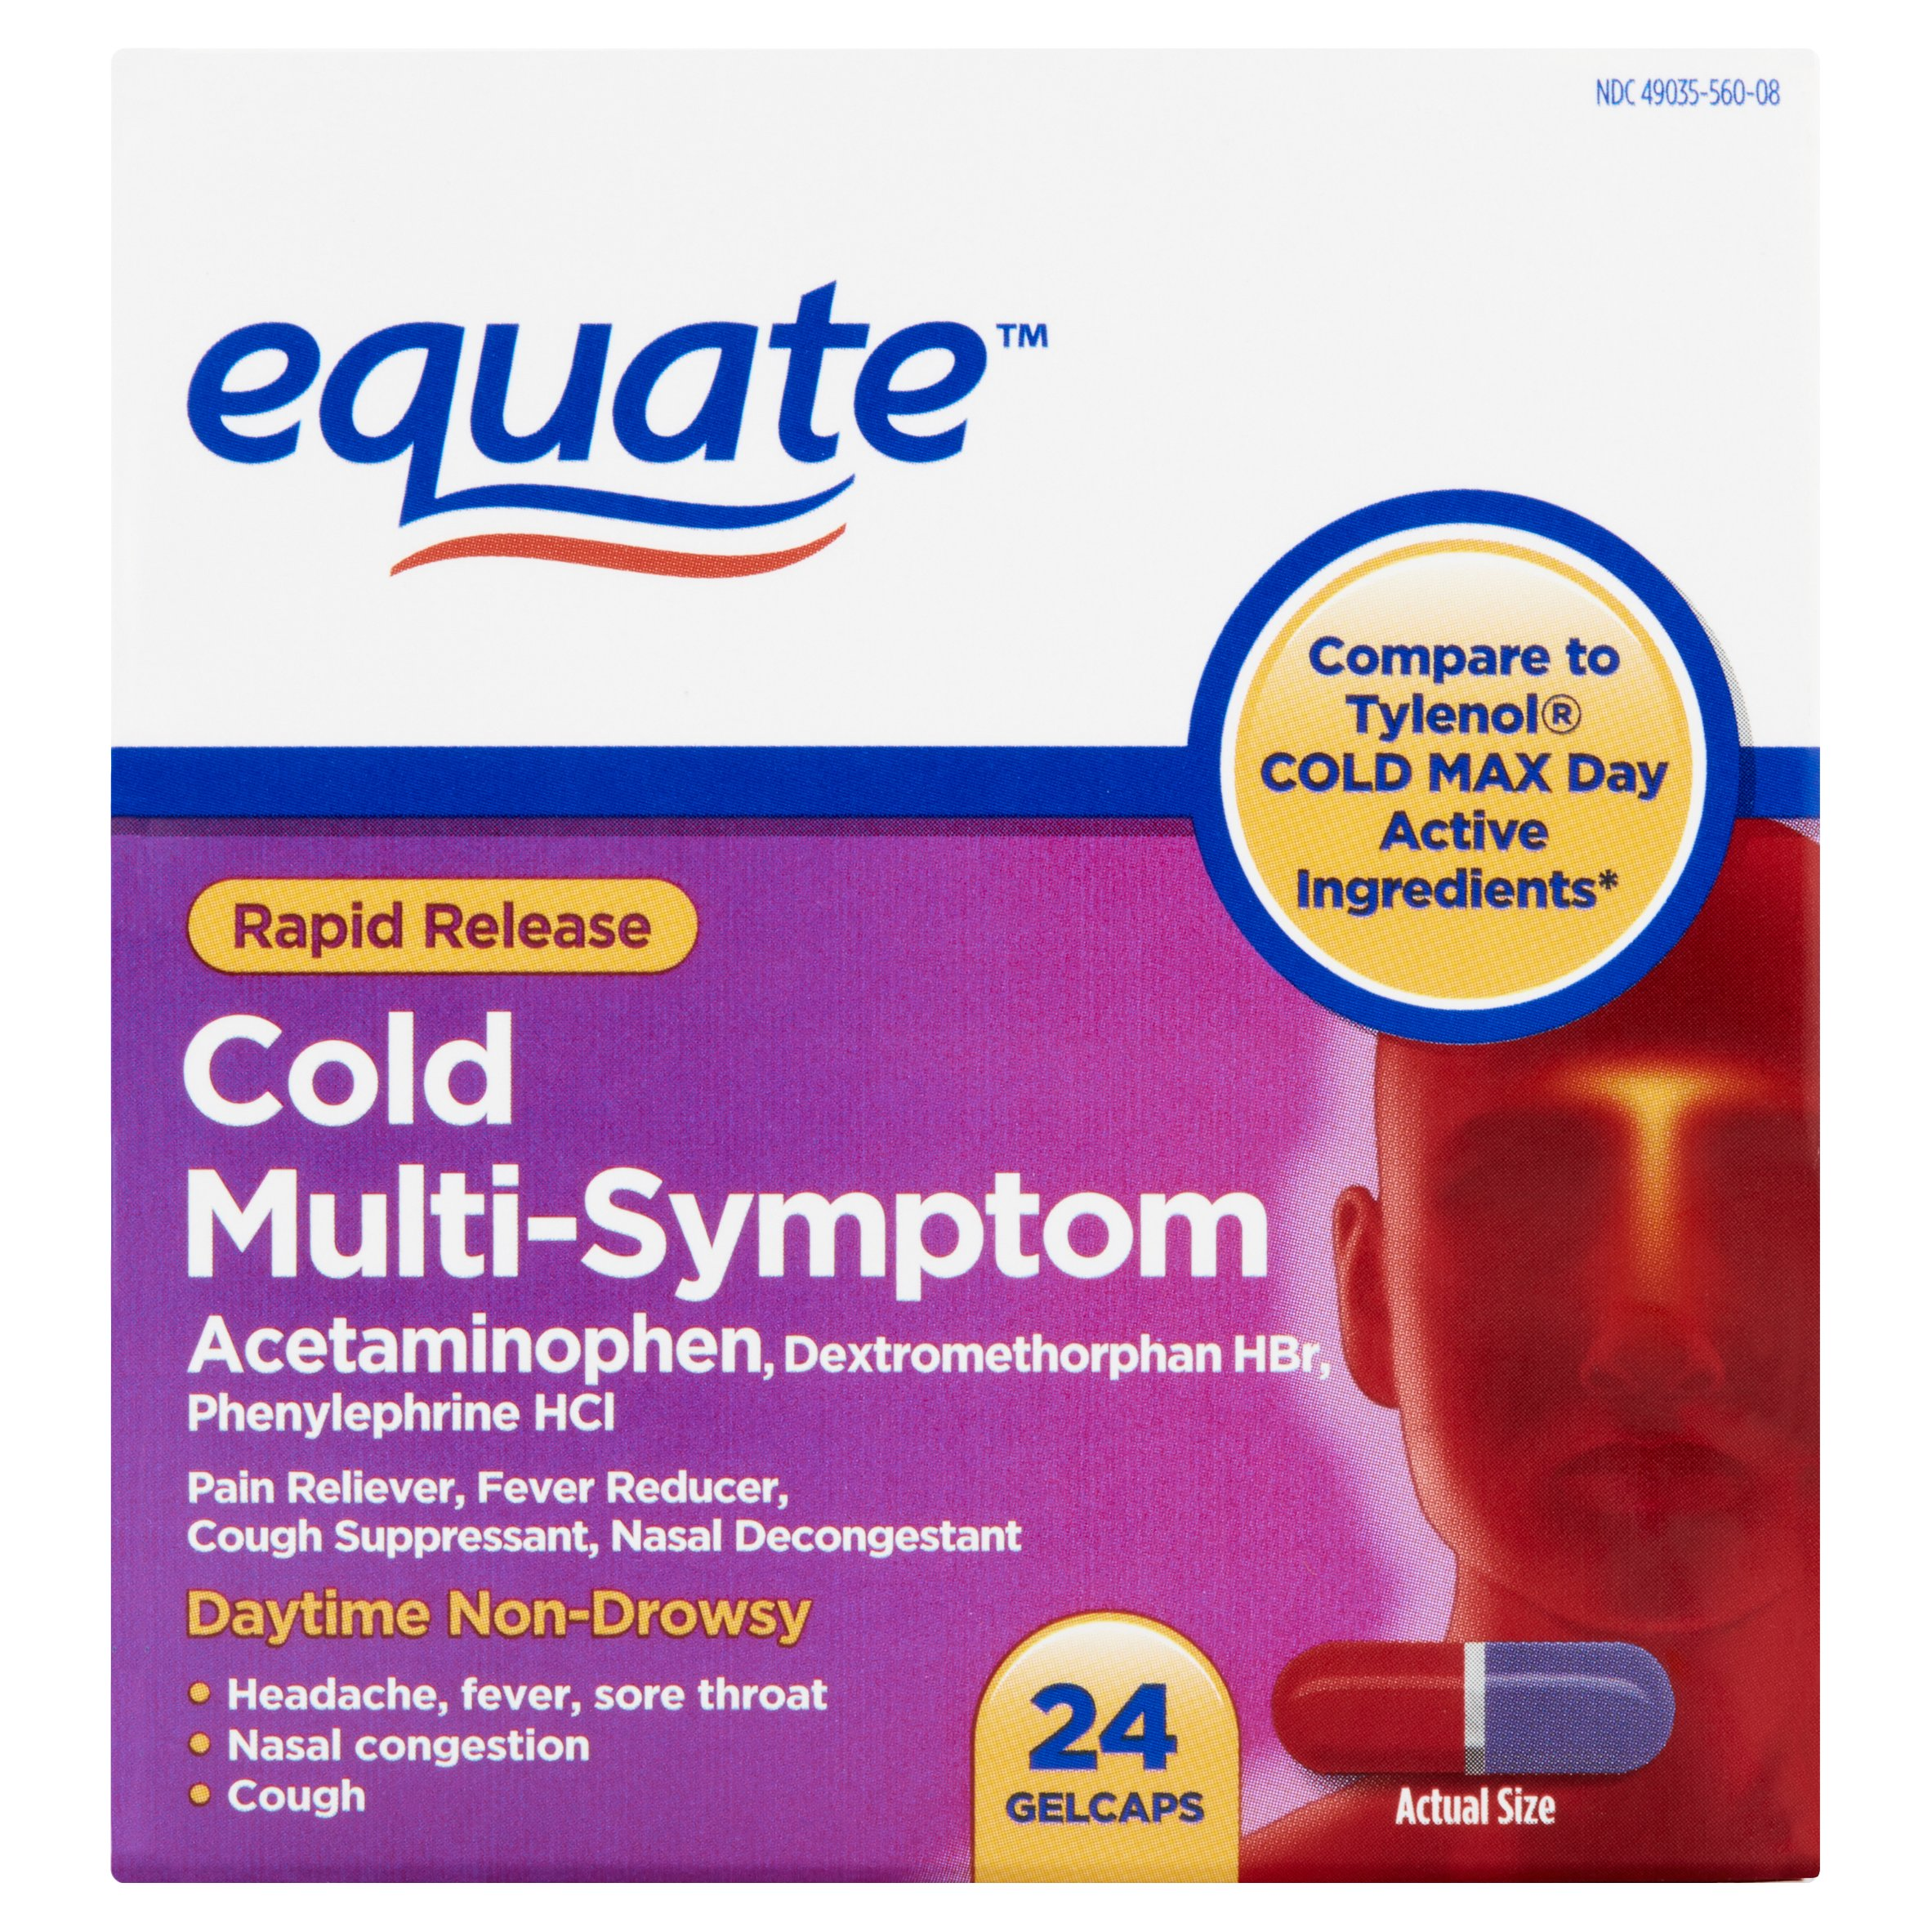 Equate Rapid Release Cold Multi-Symptom Gelcaps, 24 Ct